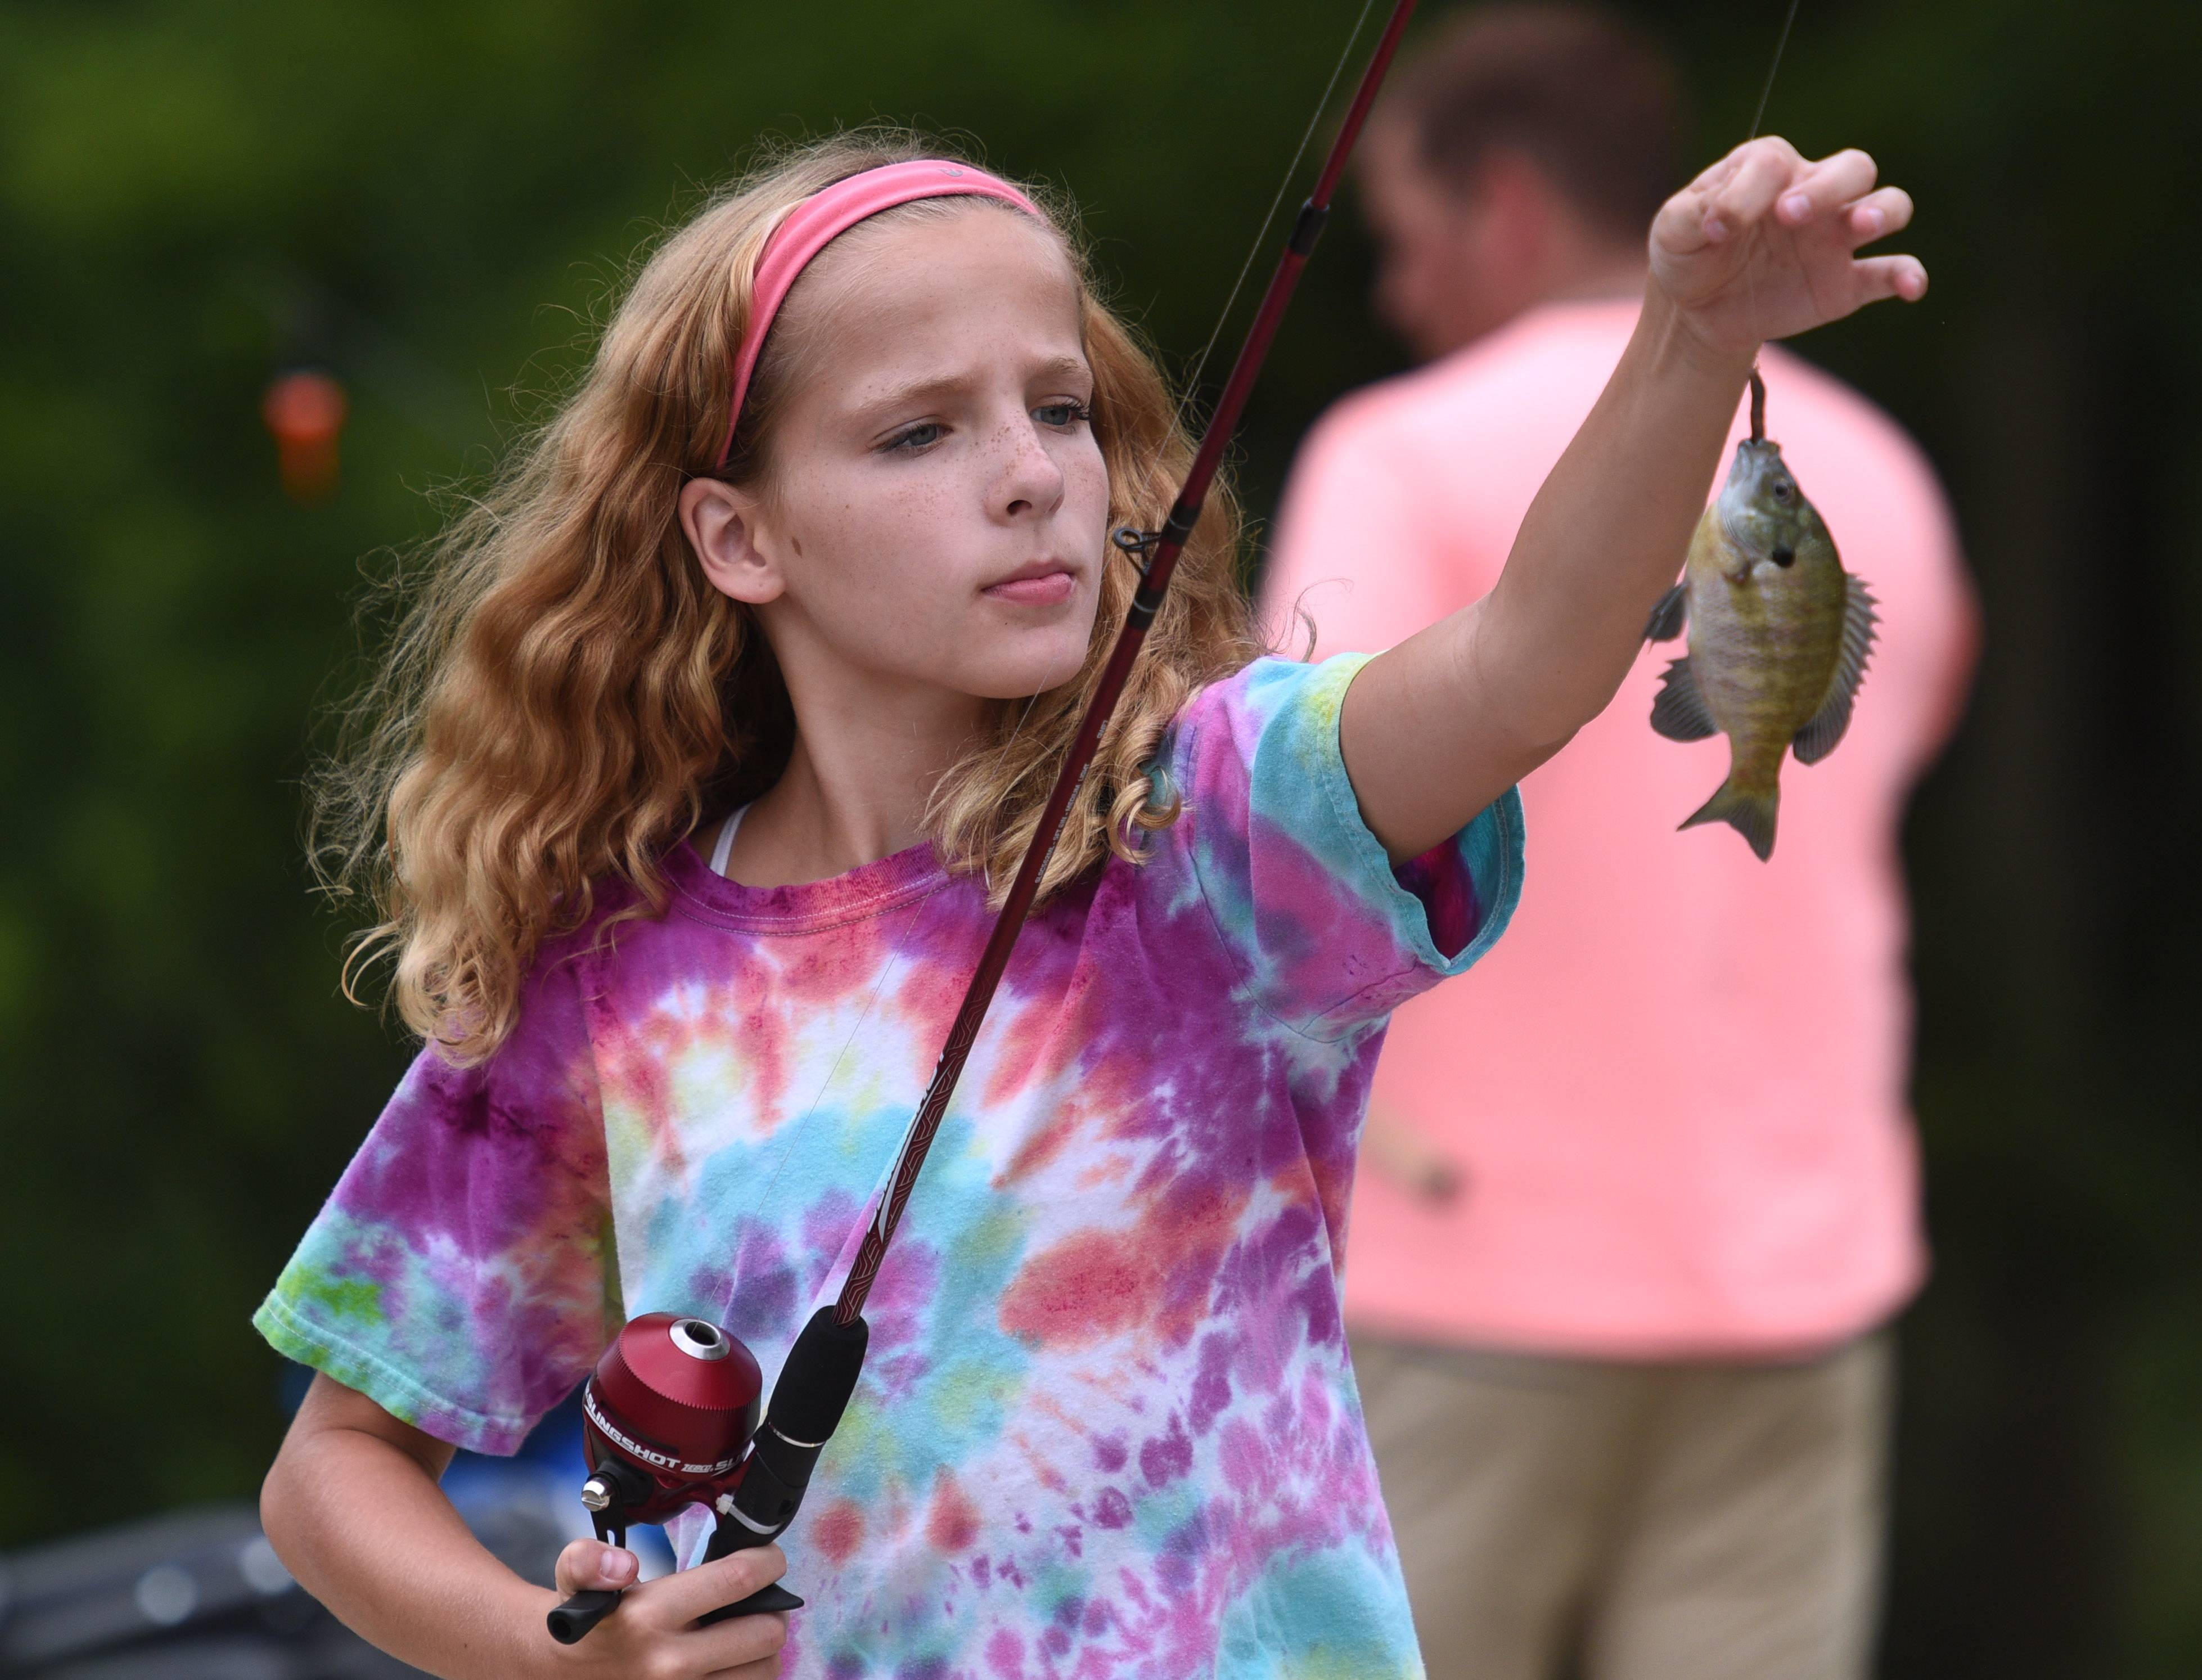 Alison Bogenski, 12 of Mundelein, takes a fish she caught to get weighed in during the Mundelein Police Department's 21st Annual Cops 'N' Bobbers fishing derby Saturday at the University of Saint Mary of the Lake seminary.